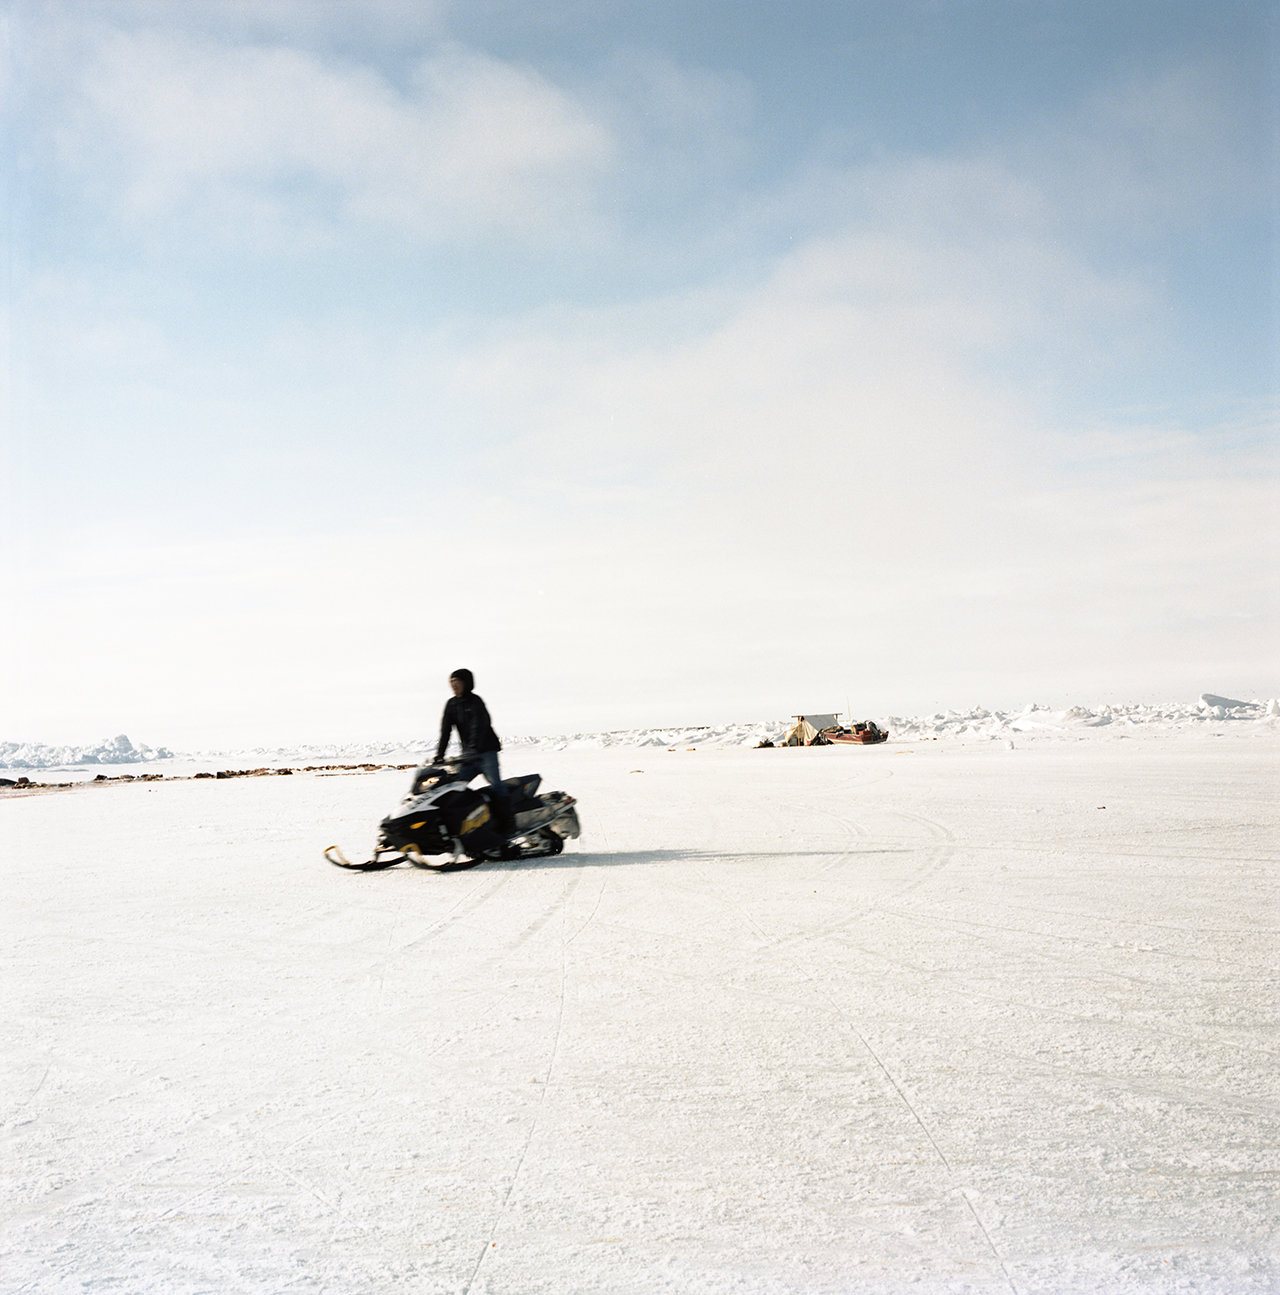 Zach on his snow machine, 2012